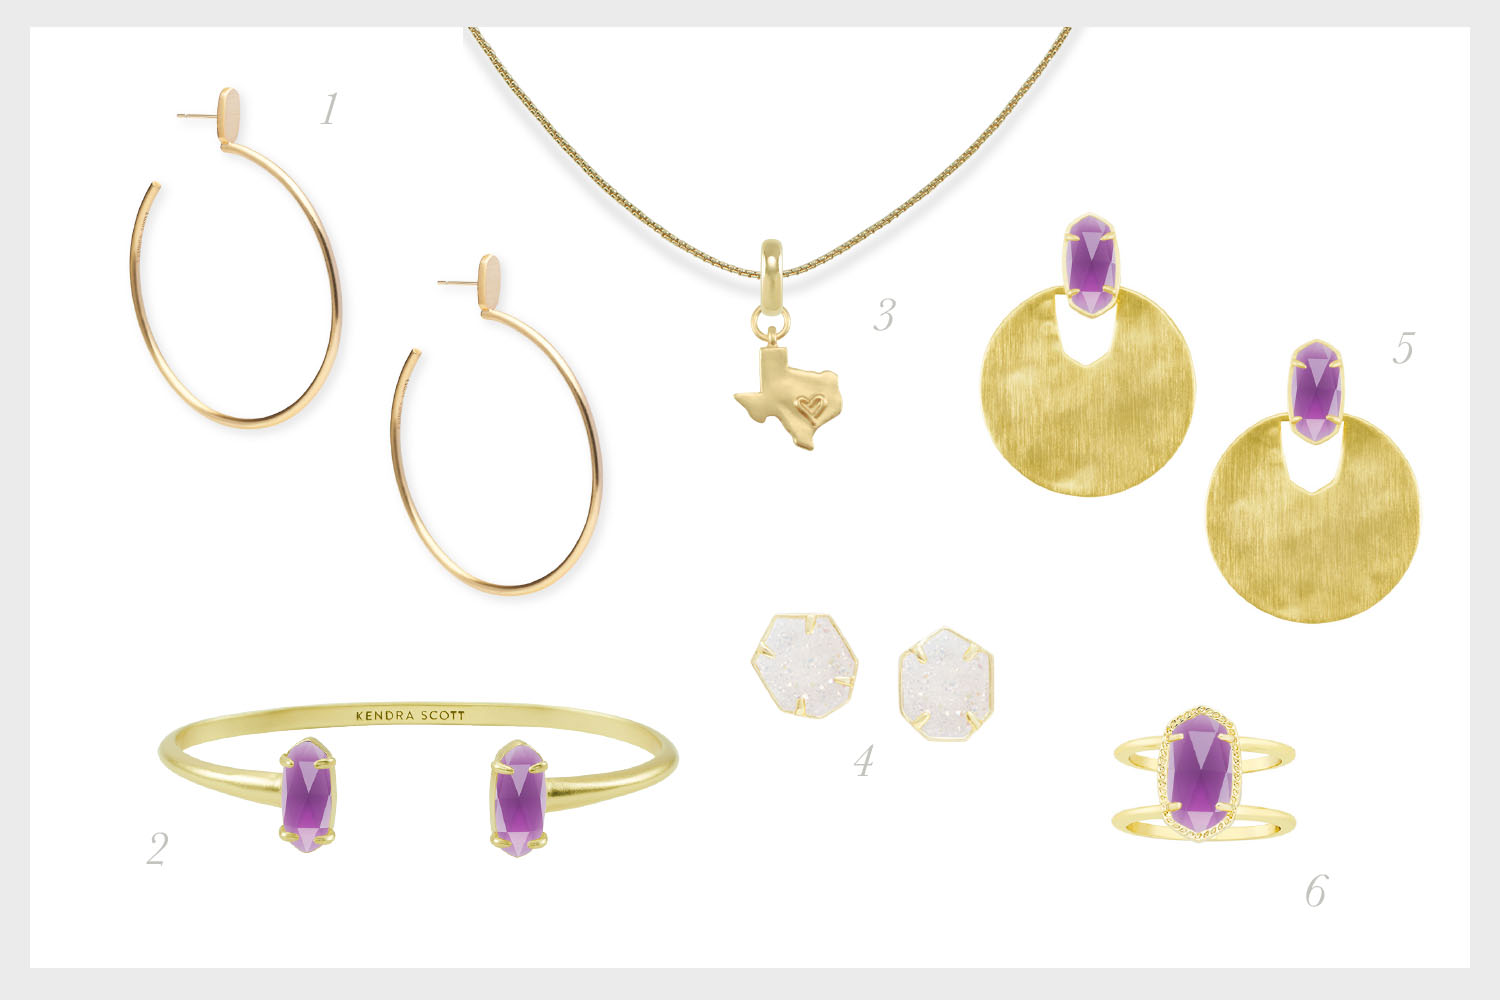 1.    Pepper Hoop Earrings in Gold    , 2.    Edie Gold Cuff Bracelet in Amethyst   , 3.    State of Texas Charm with Thin Adjustable Chain Necklace in Gold   , 4.    Taylor Gold Stud Earrings in Iridescent Drusy   , 5.    Deena Gold Statement Earrings in Amethyst   , 6.    Elyse Gold Cocktail Ring in Amethyst